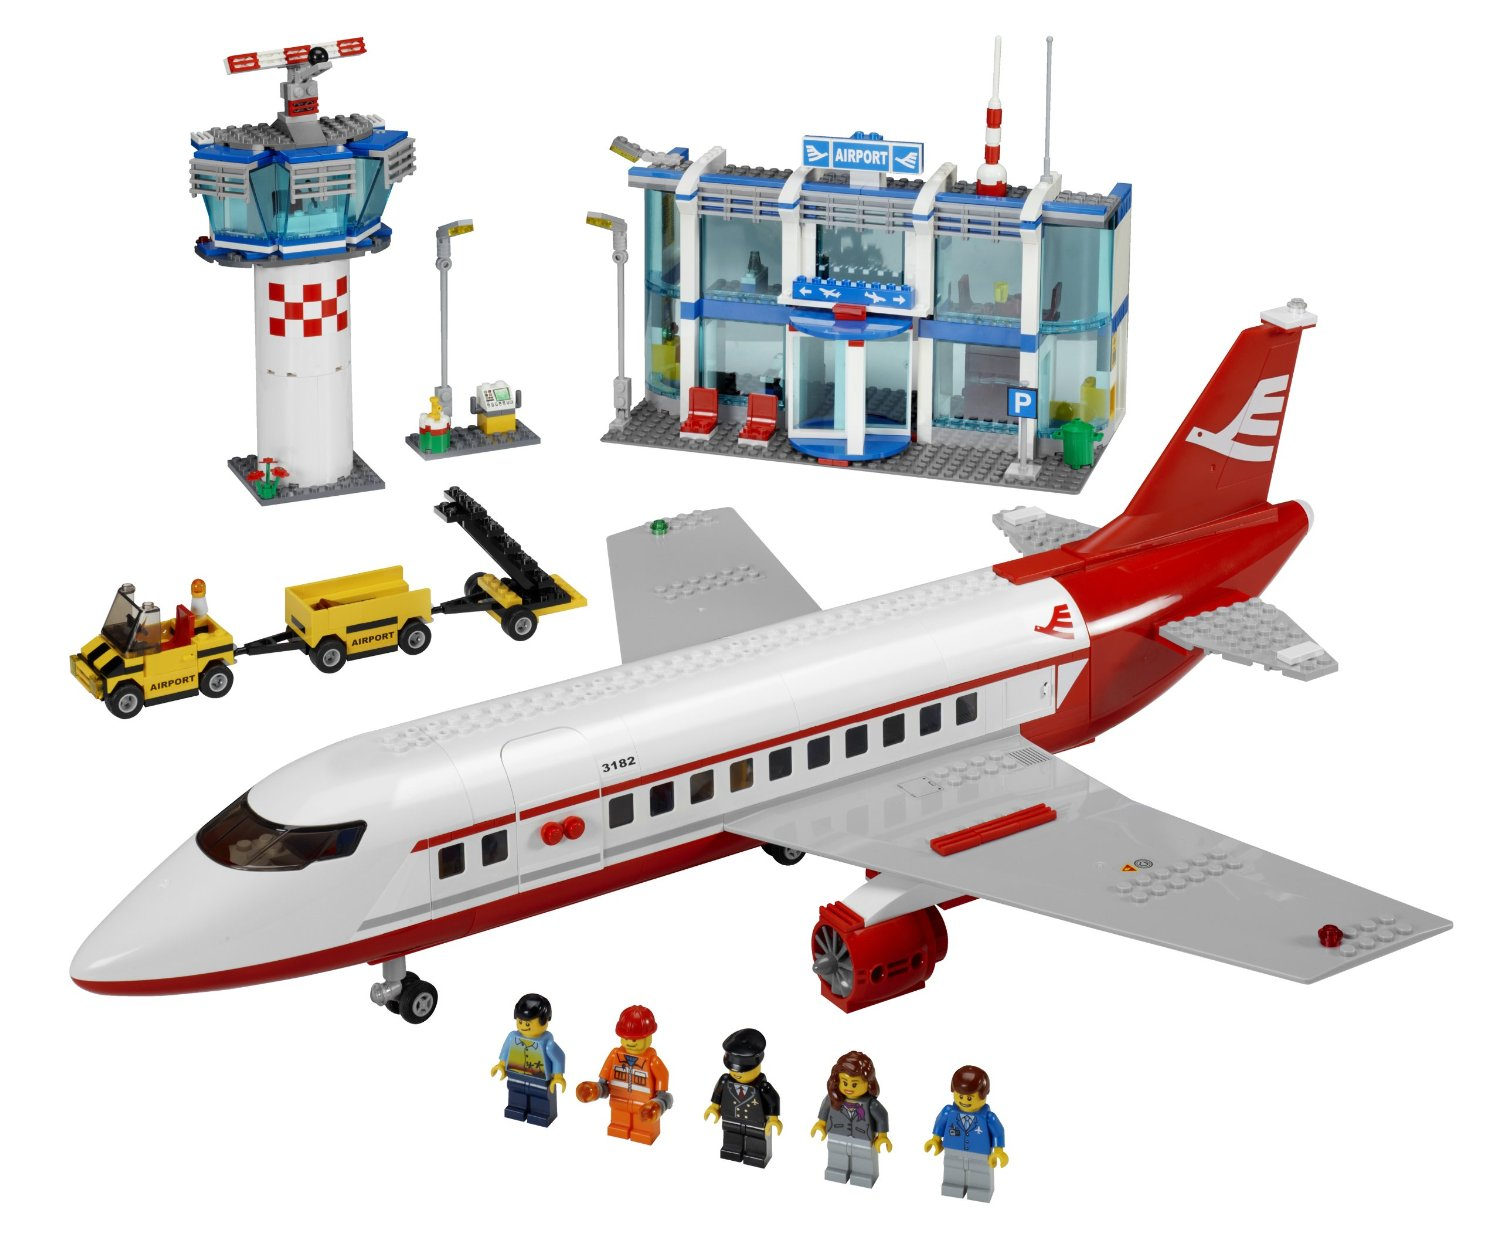 Lego Planes & Helicopters